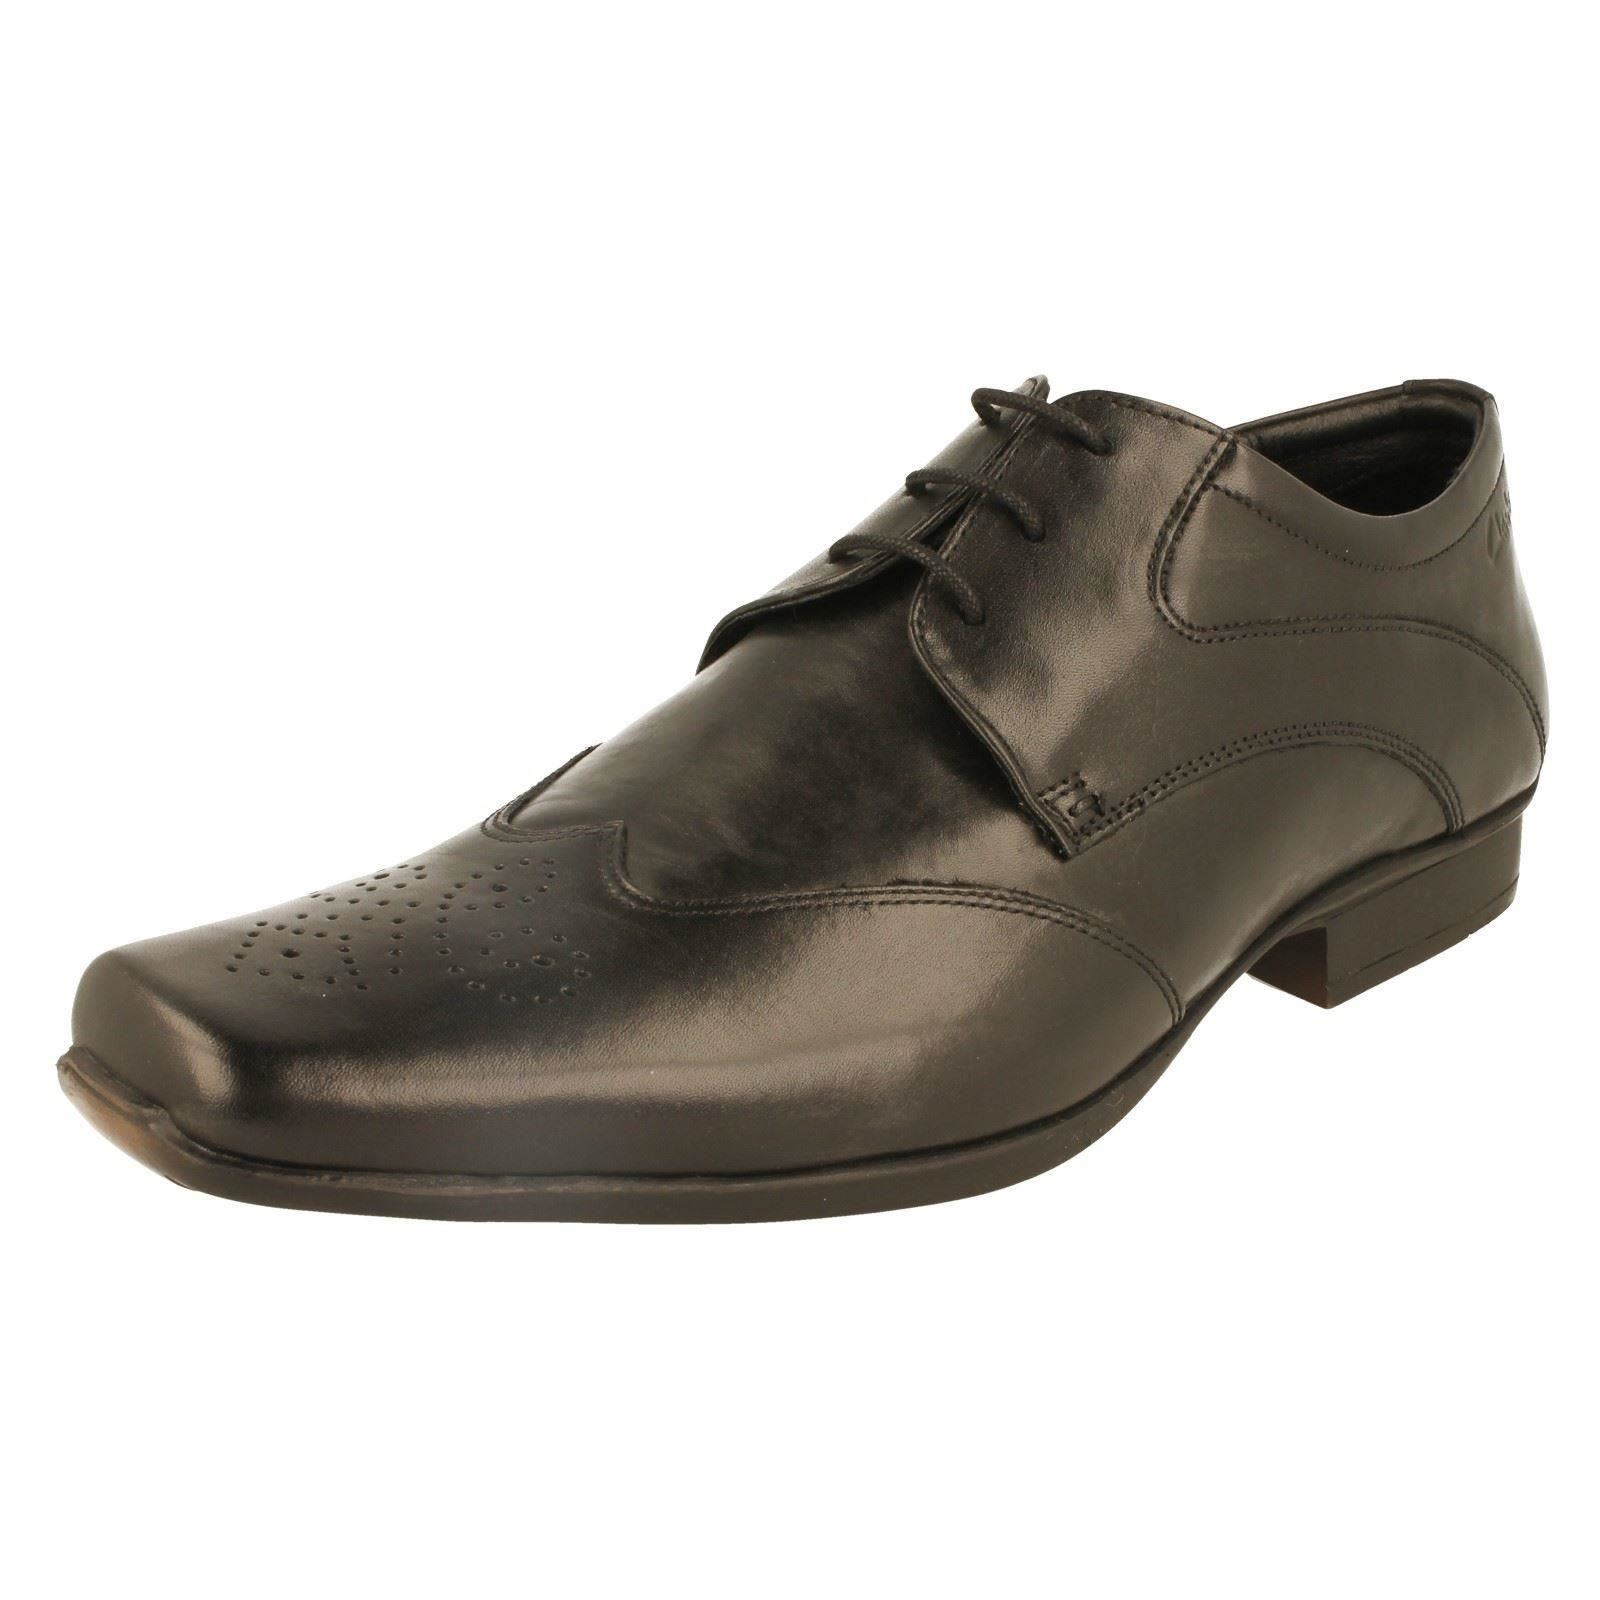 Uomo Clarks Formal Formal Formal Lace-Up Shoes, Baffix Moscow -w b5132d